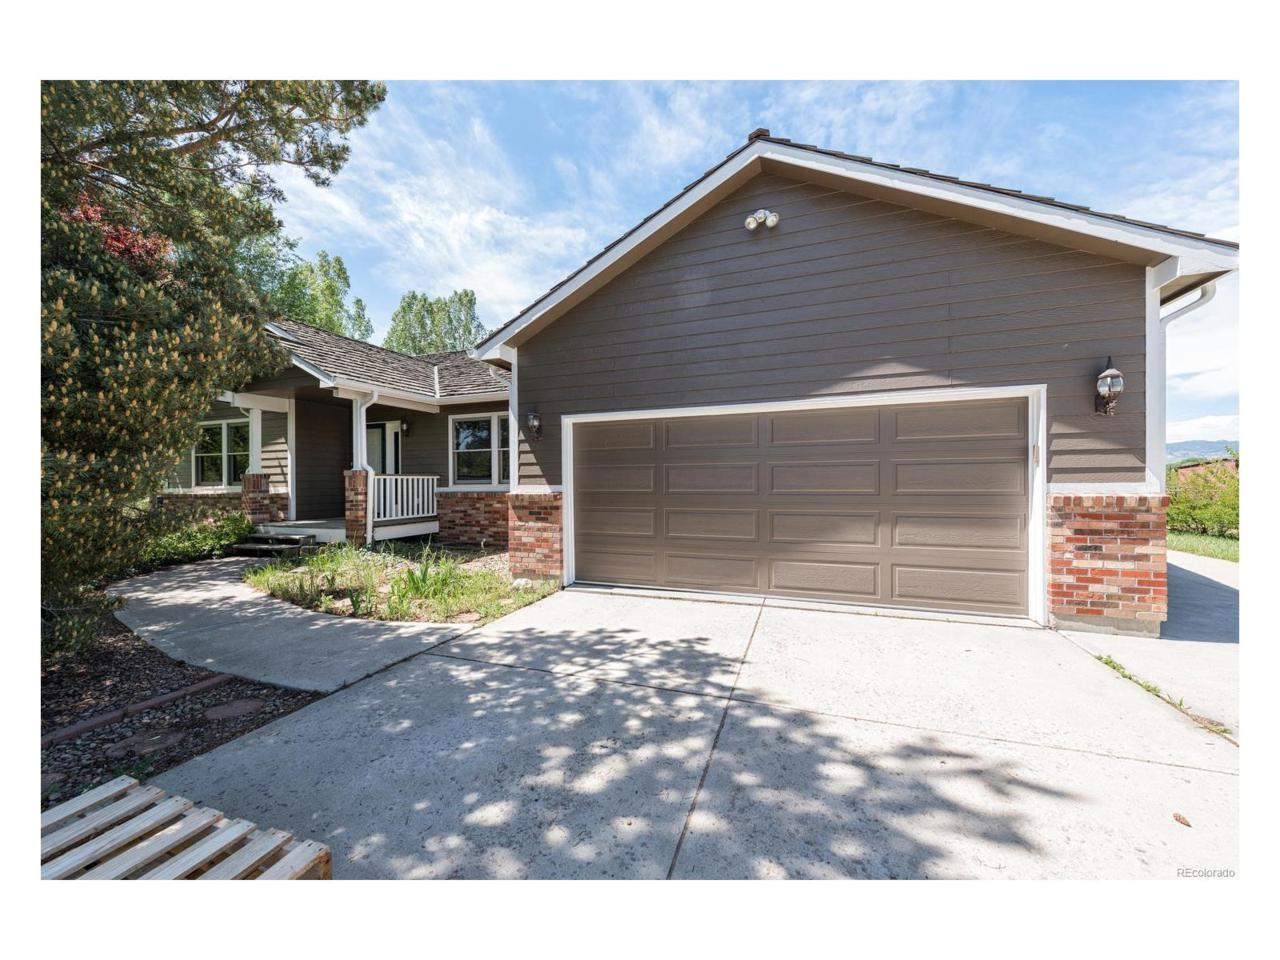 6957 Peppertree Drive, Niwot, CO 80503 (MLS #7396708) :: 8z Real Estate